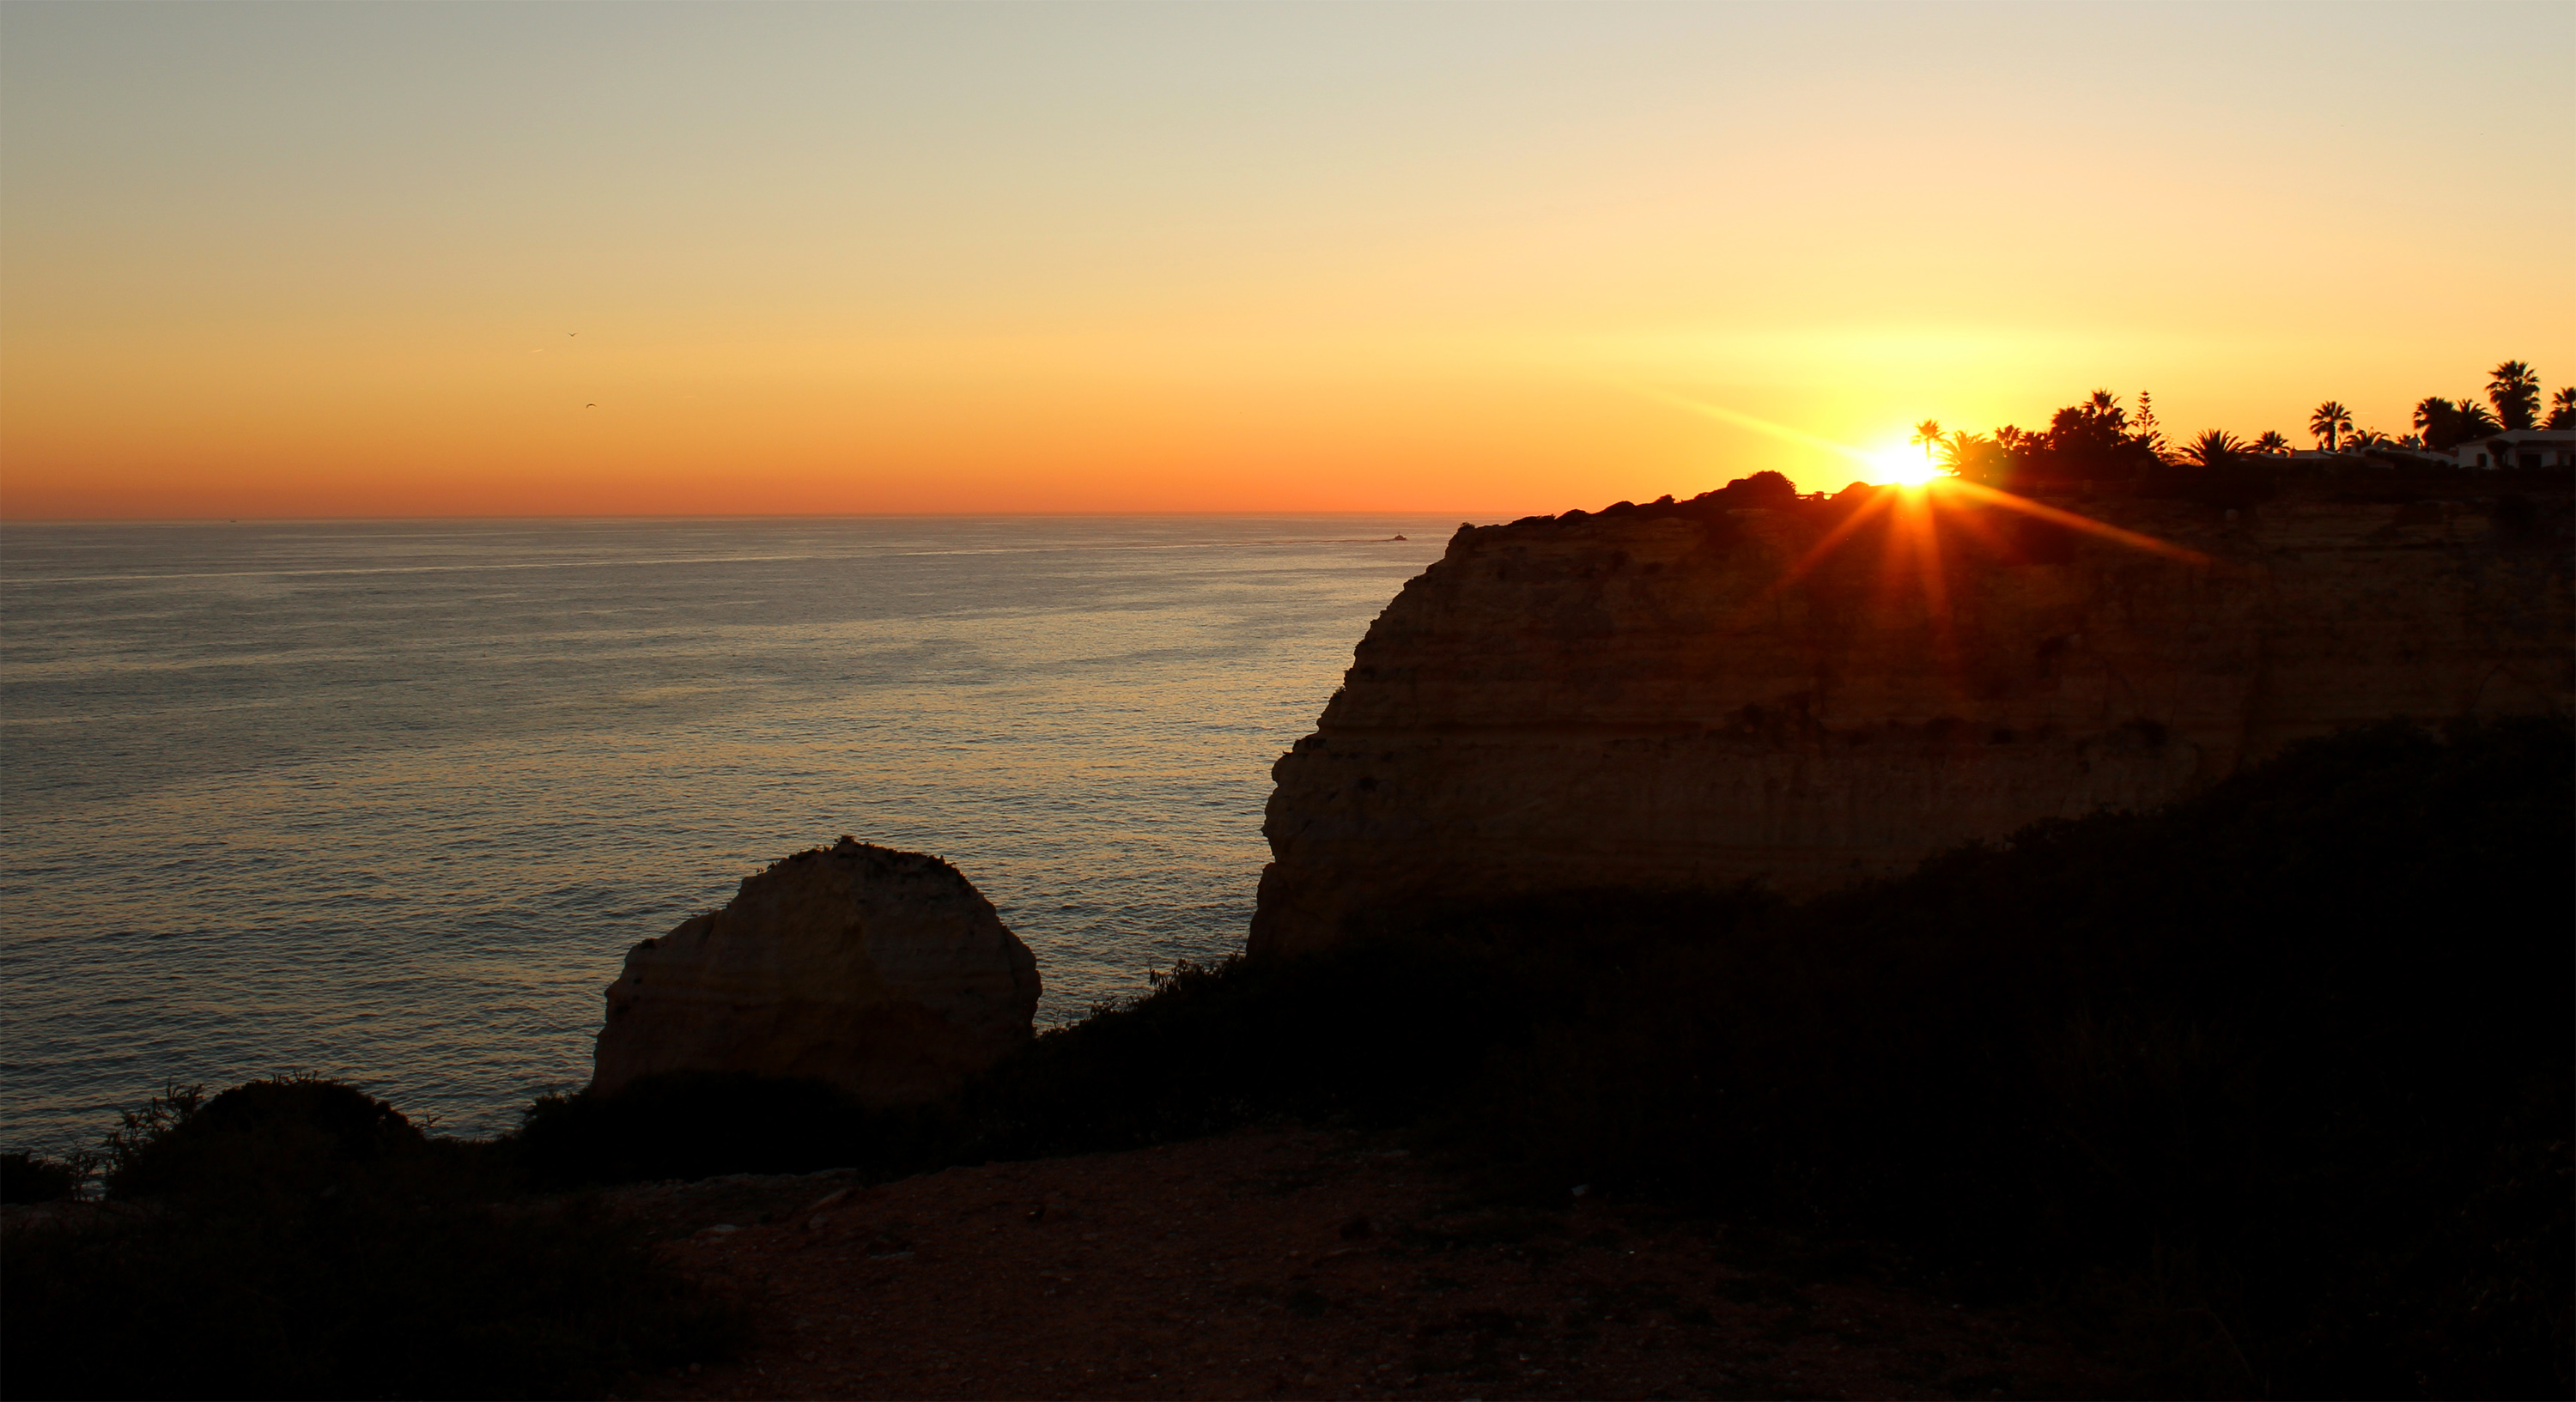 Sunset over the cliffs in algarve photo